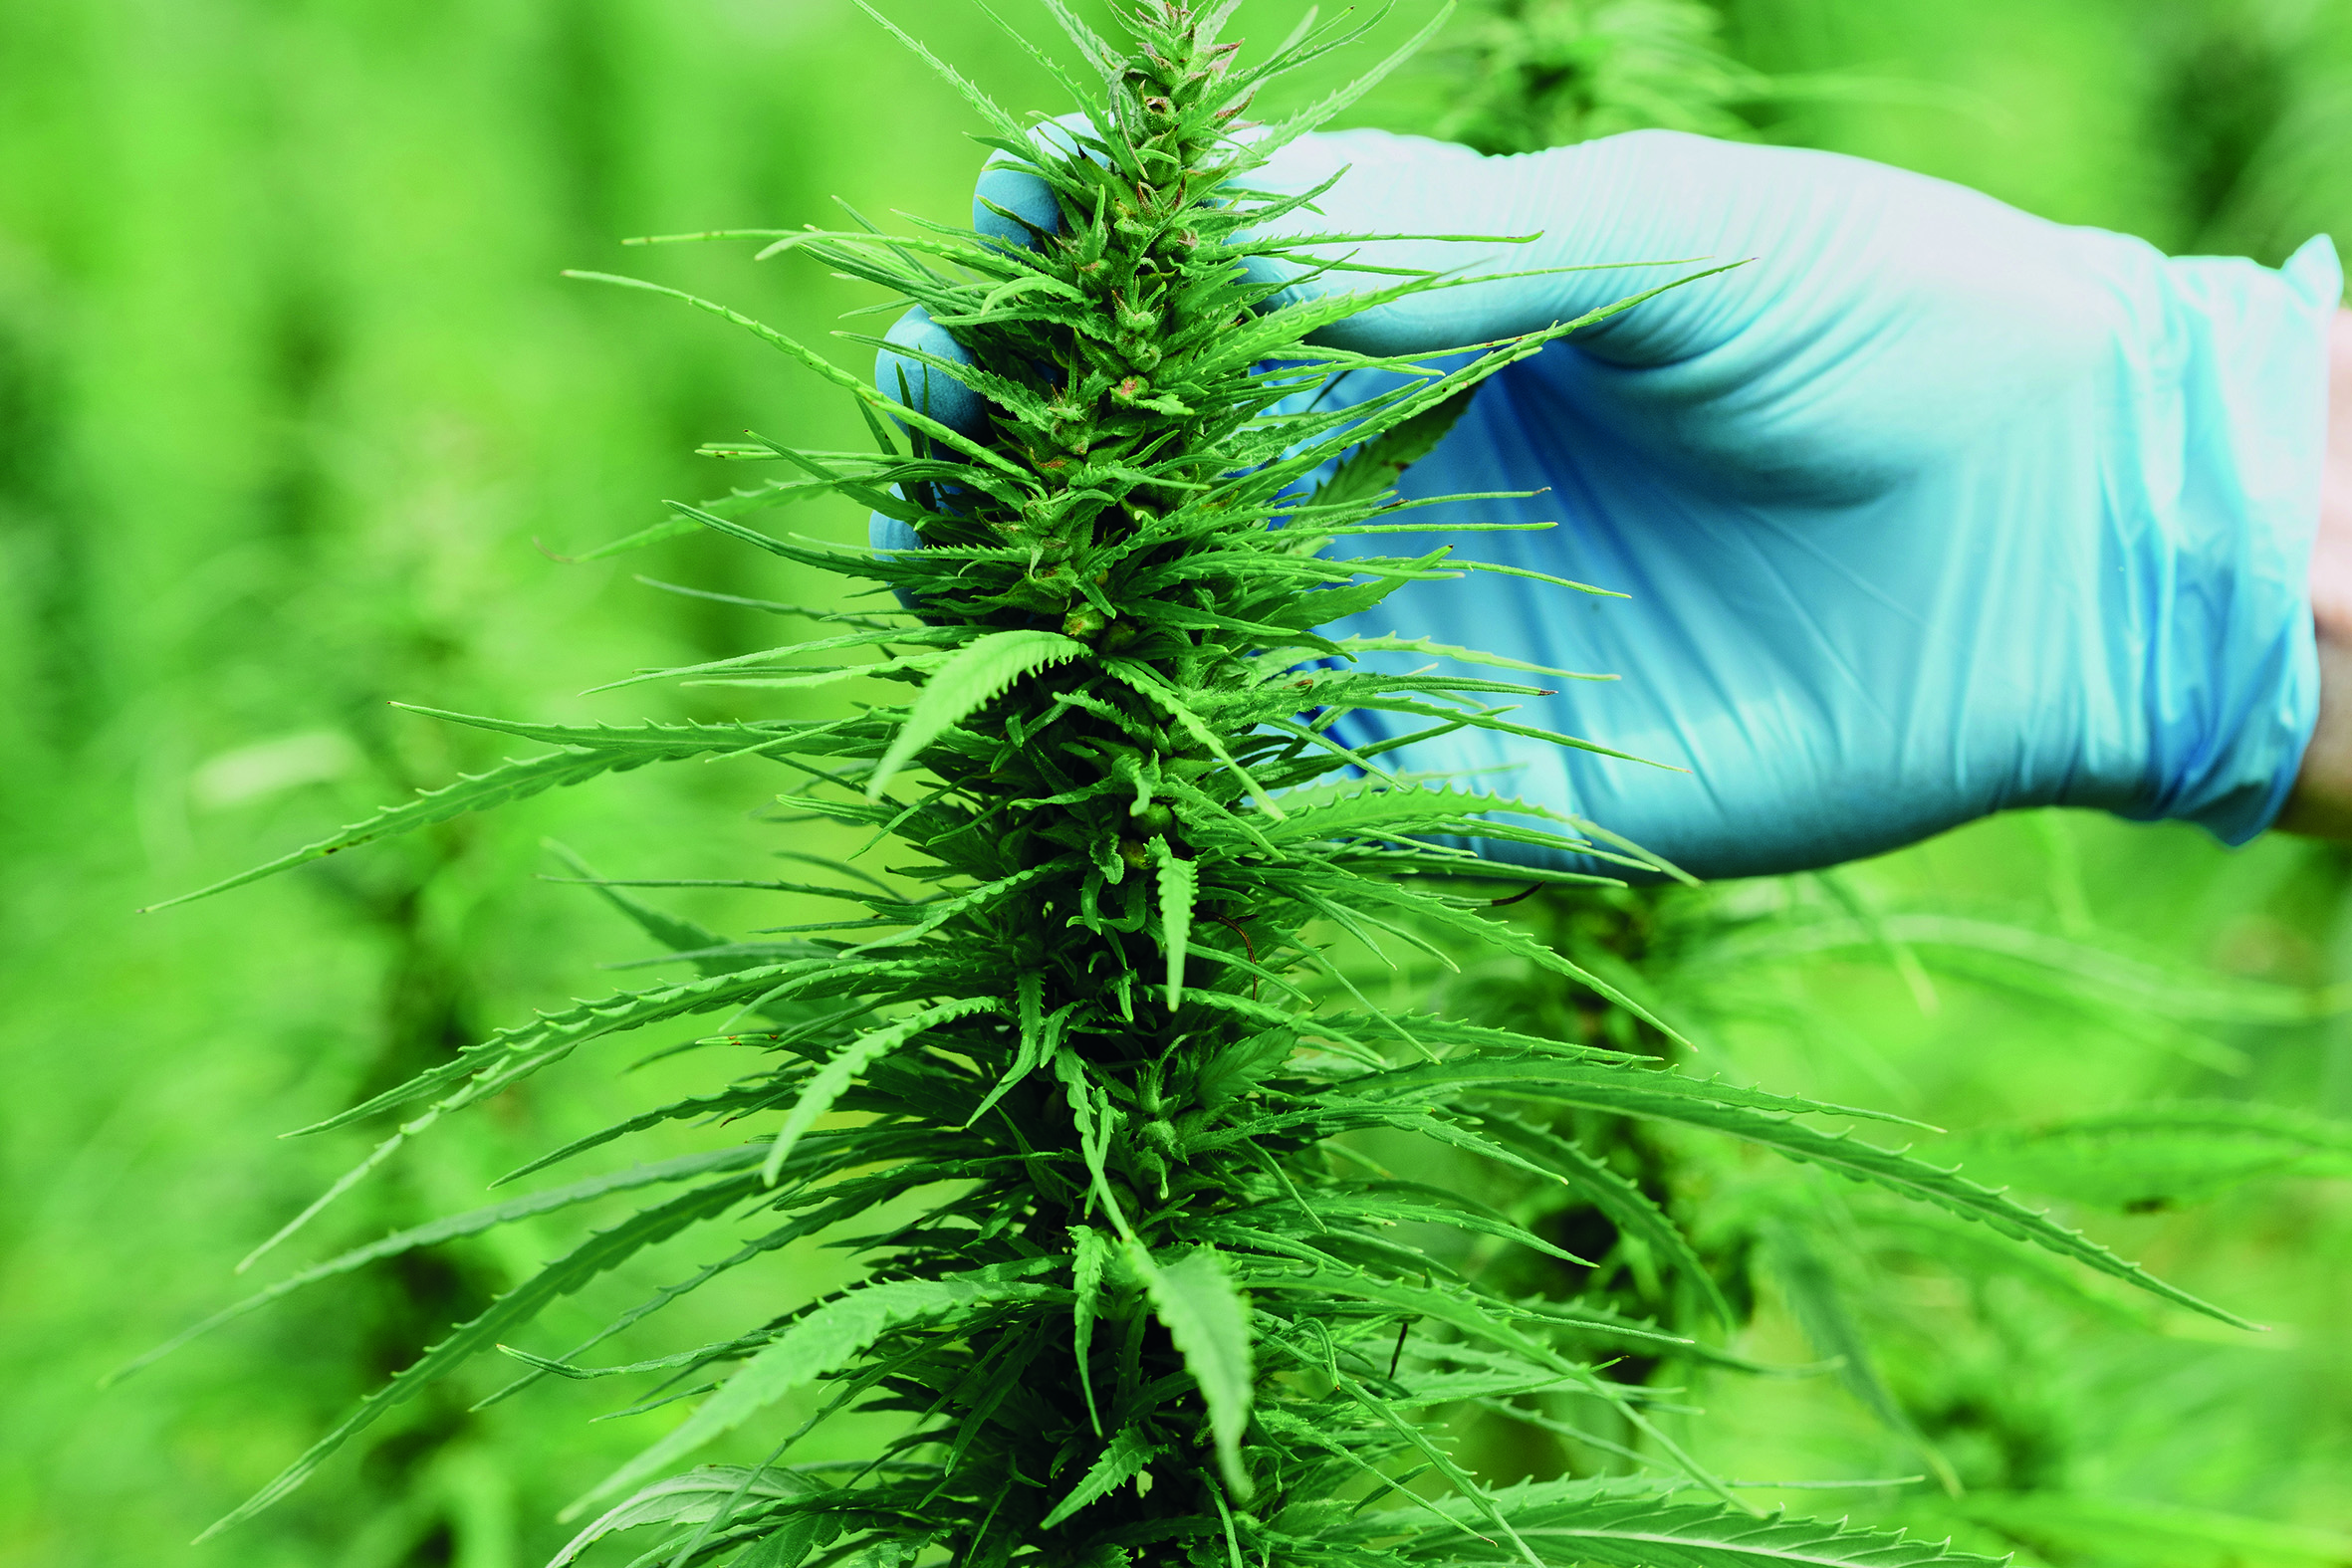 Scientist in gloves checking hemp plants and flowers on cannabis